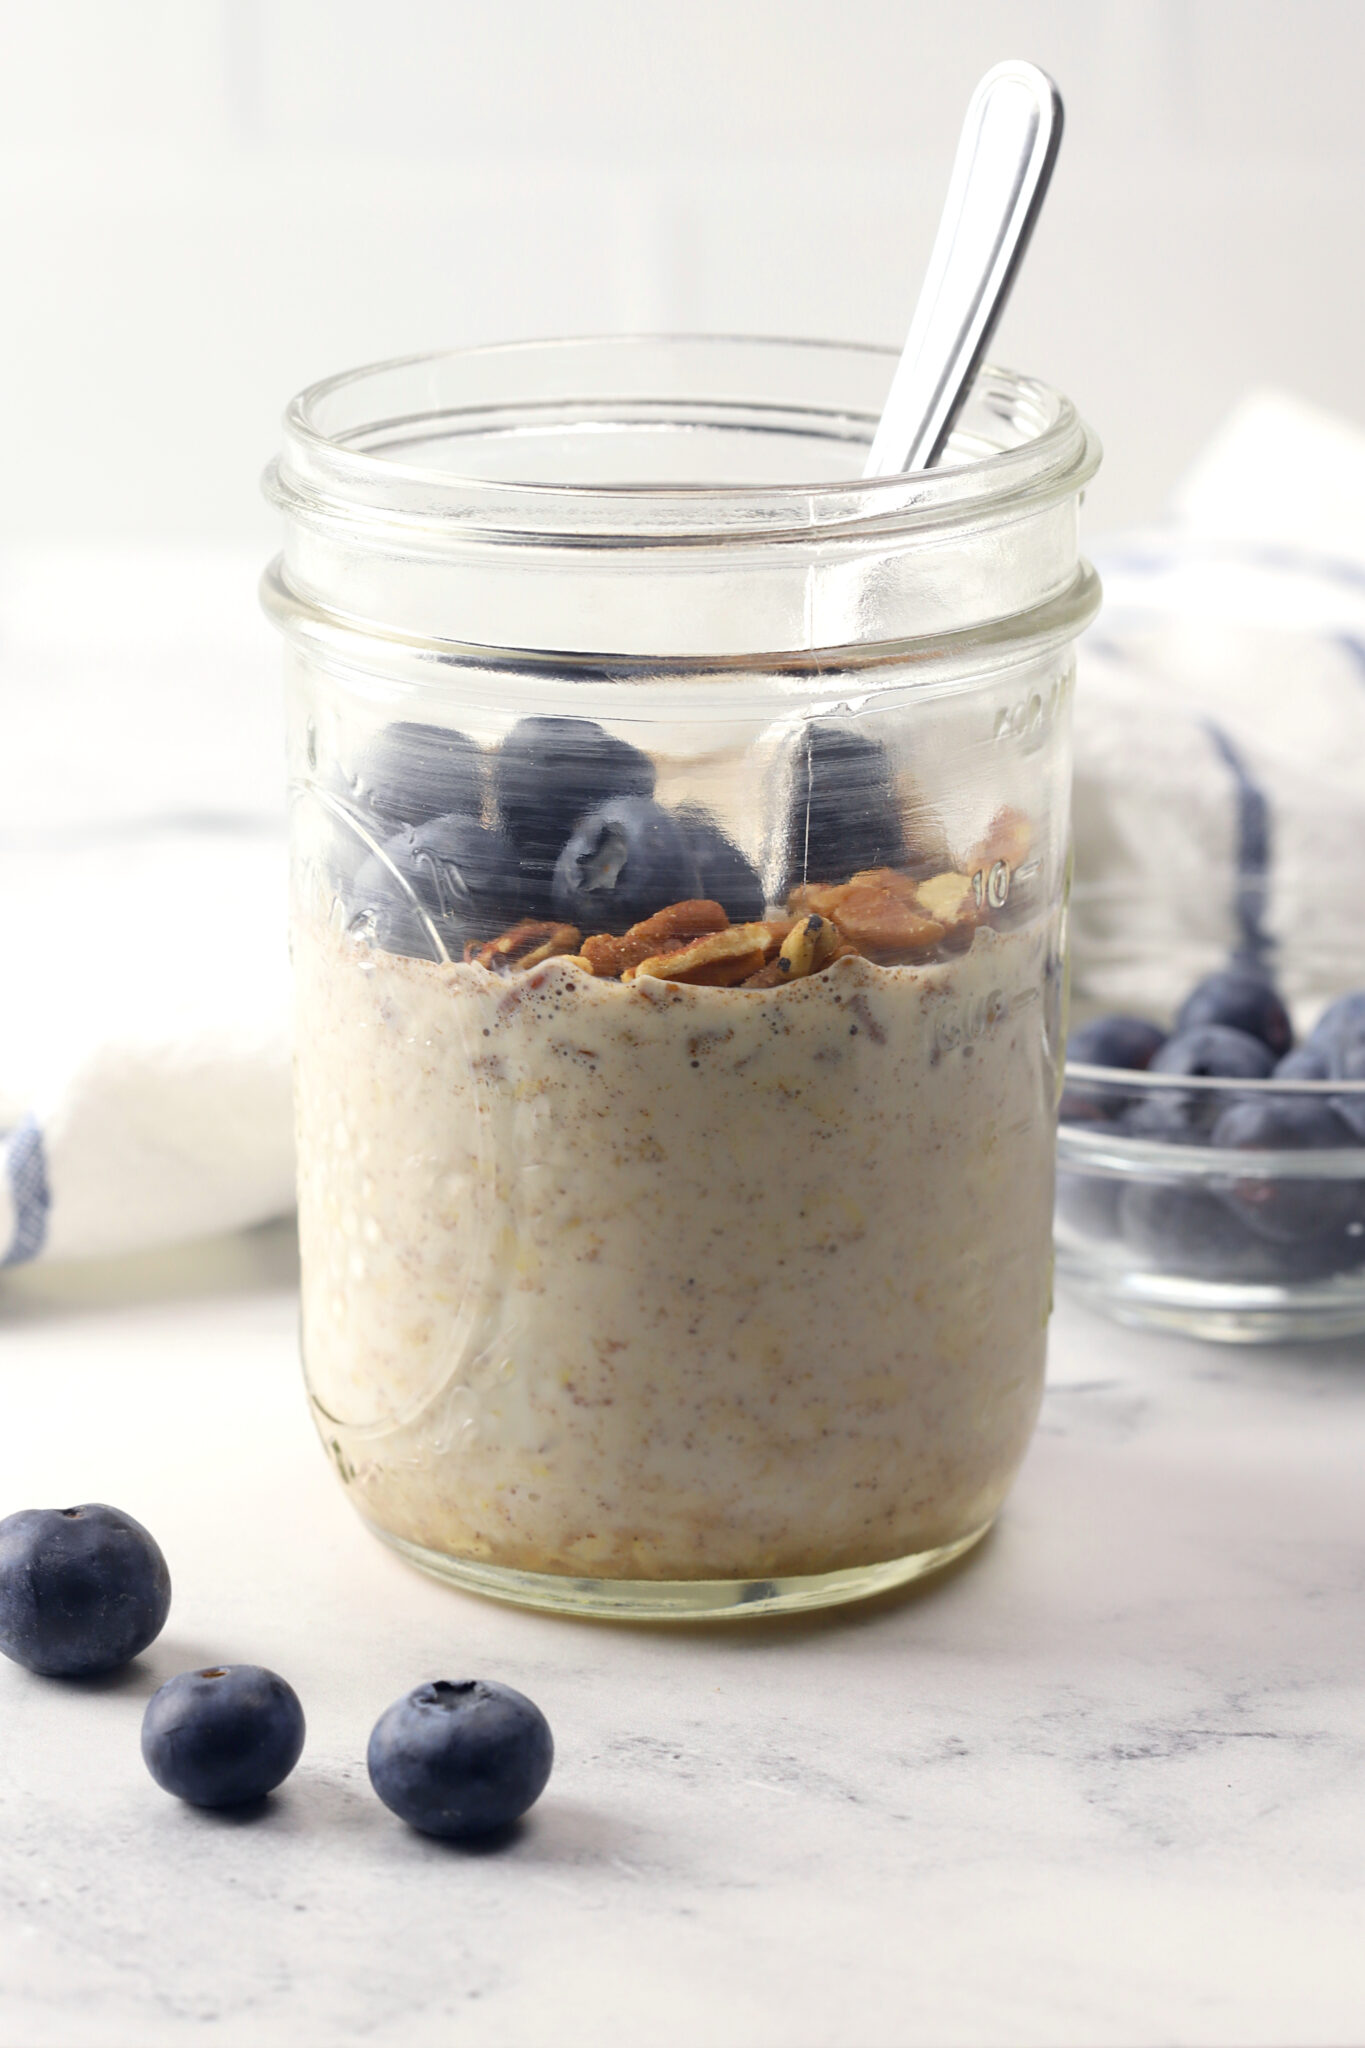 Jar of overnight oats topped with pecans and blueberries.